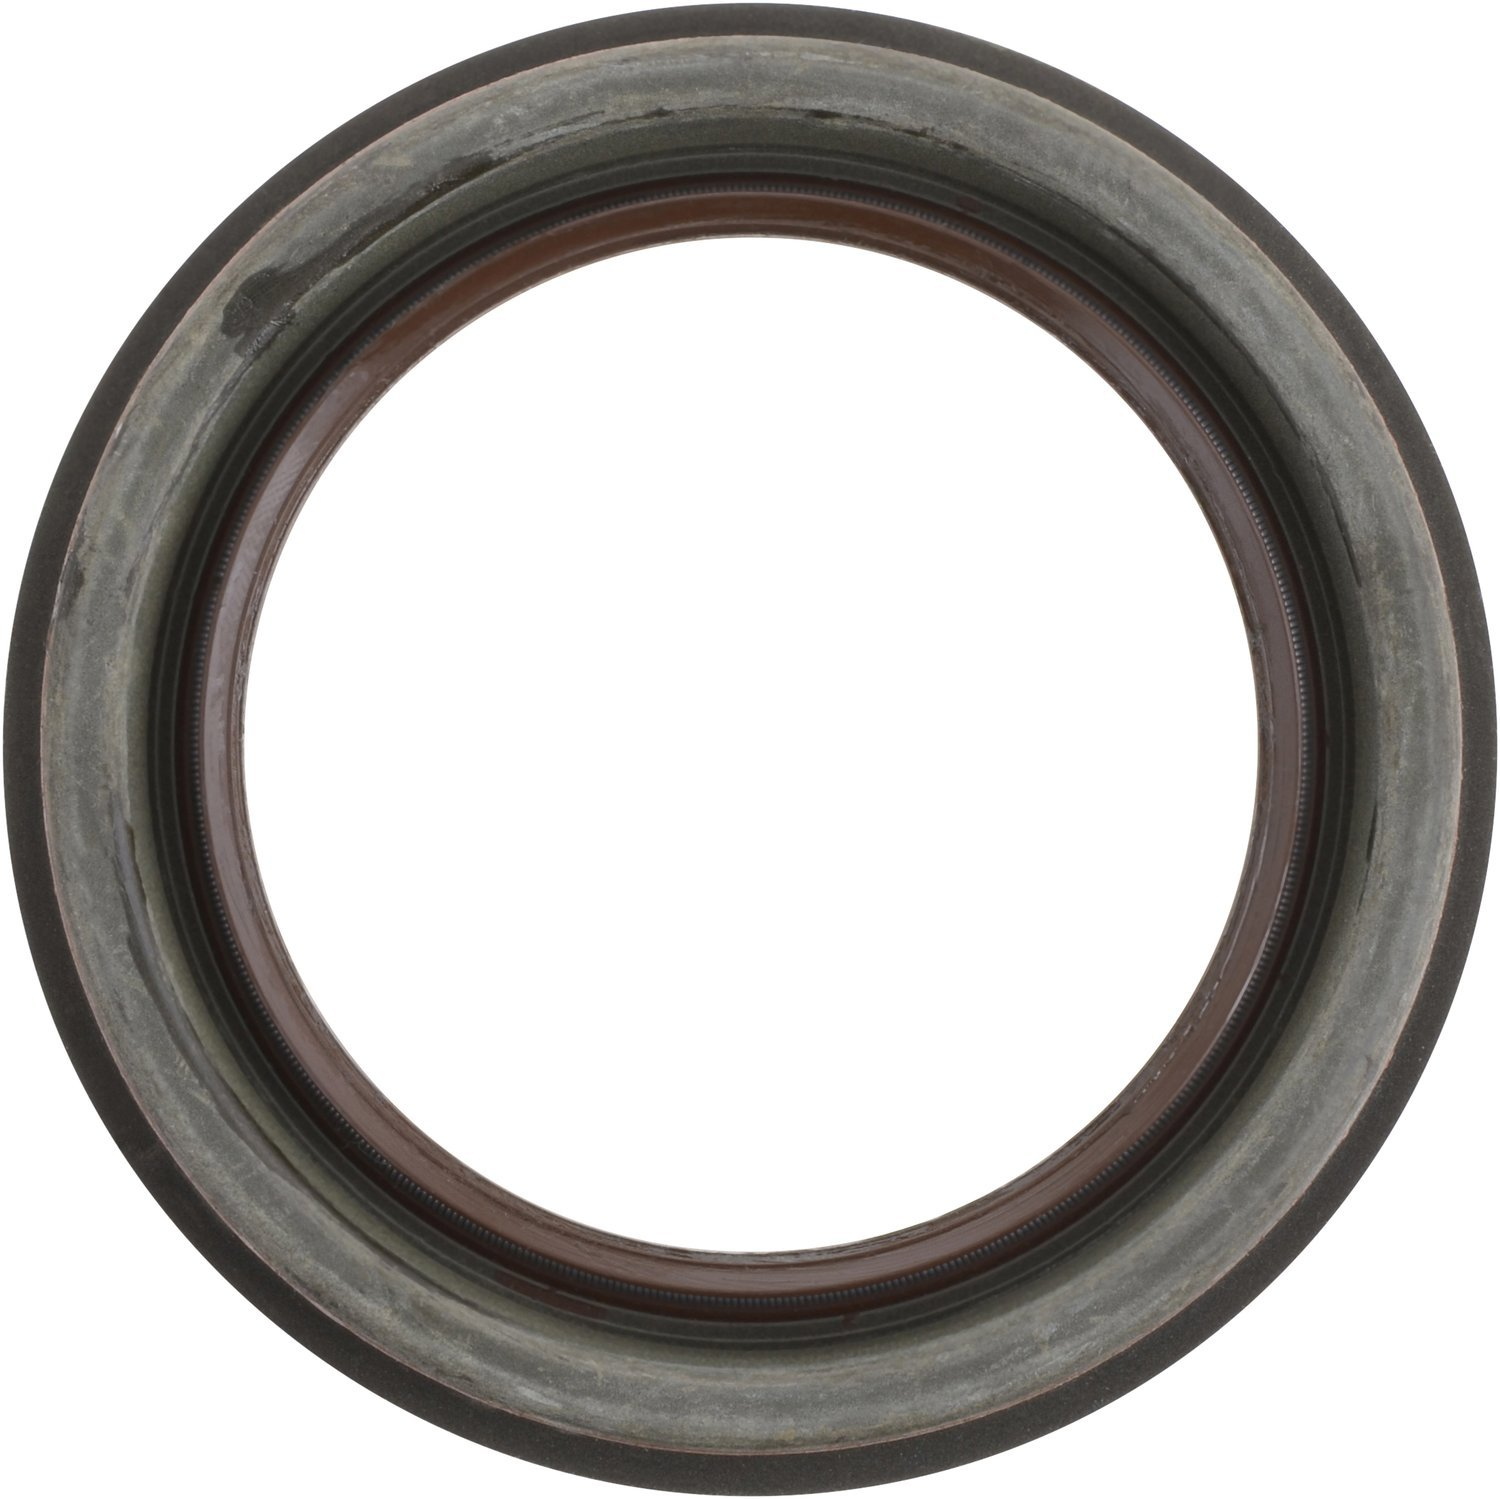 Spicer 47507 Wheel Seal